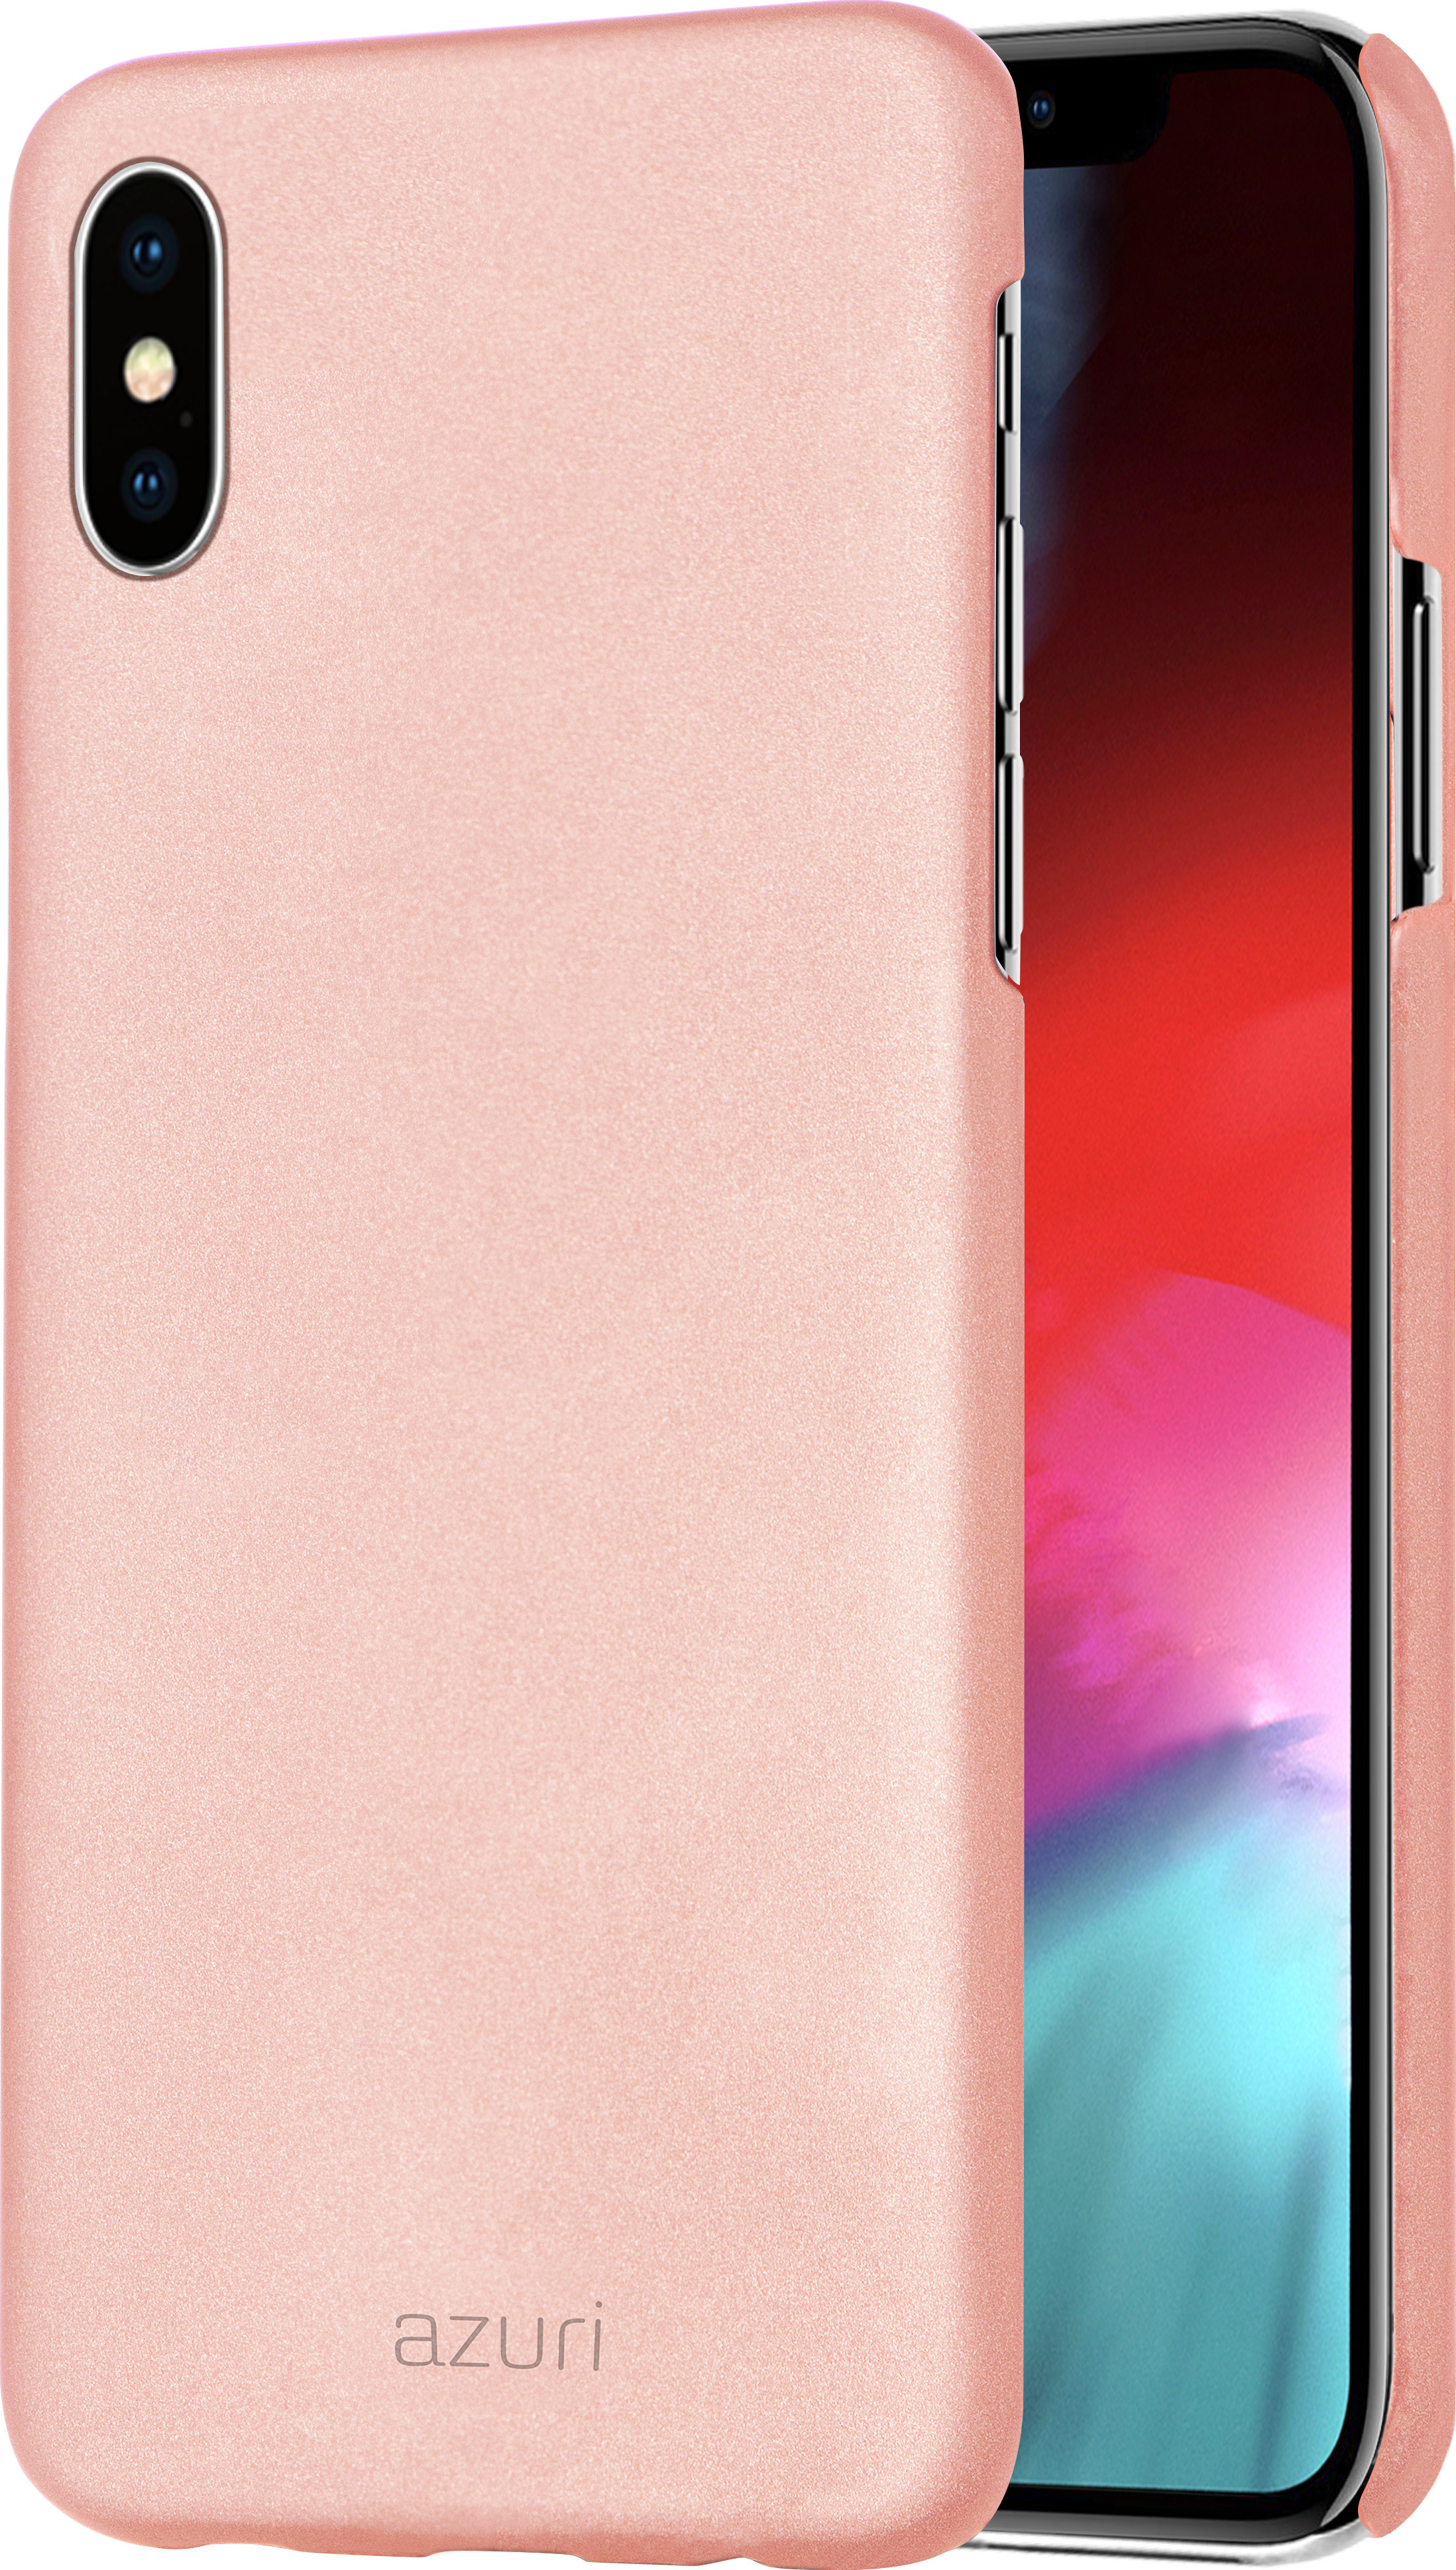 Azuri Metallic Cover With Soft Touch Coating Rose Gold For